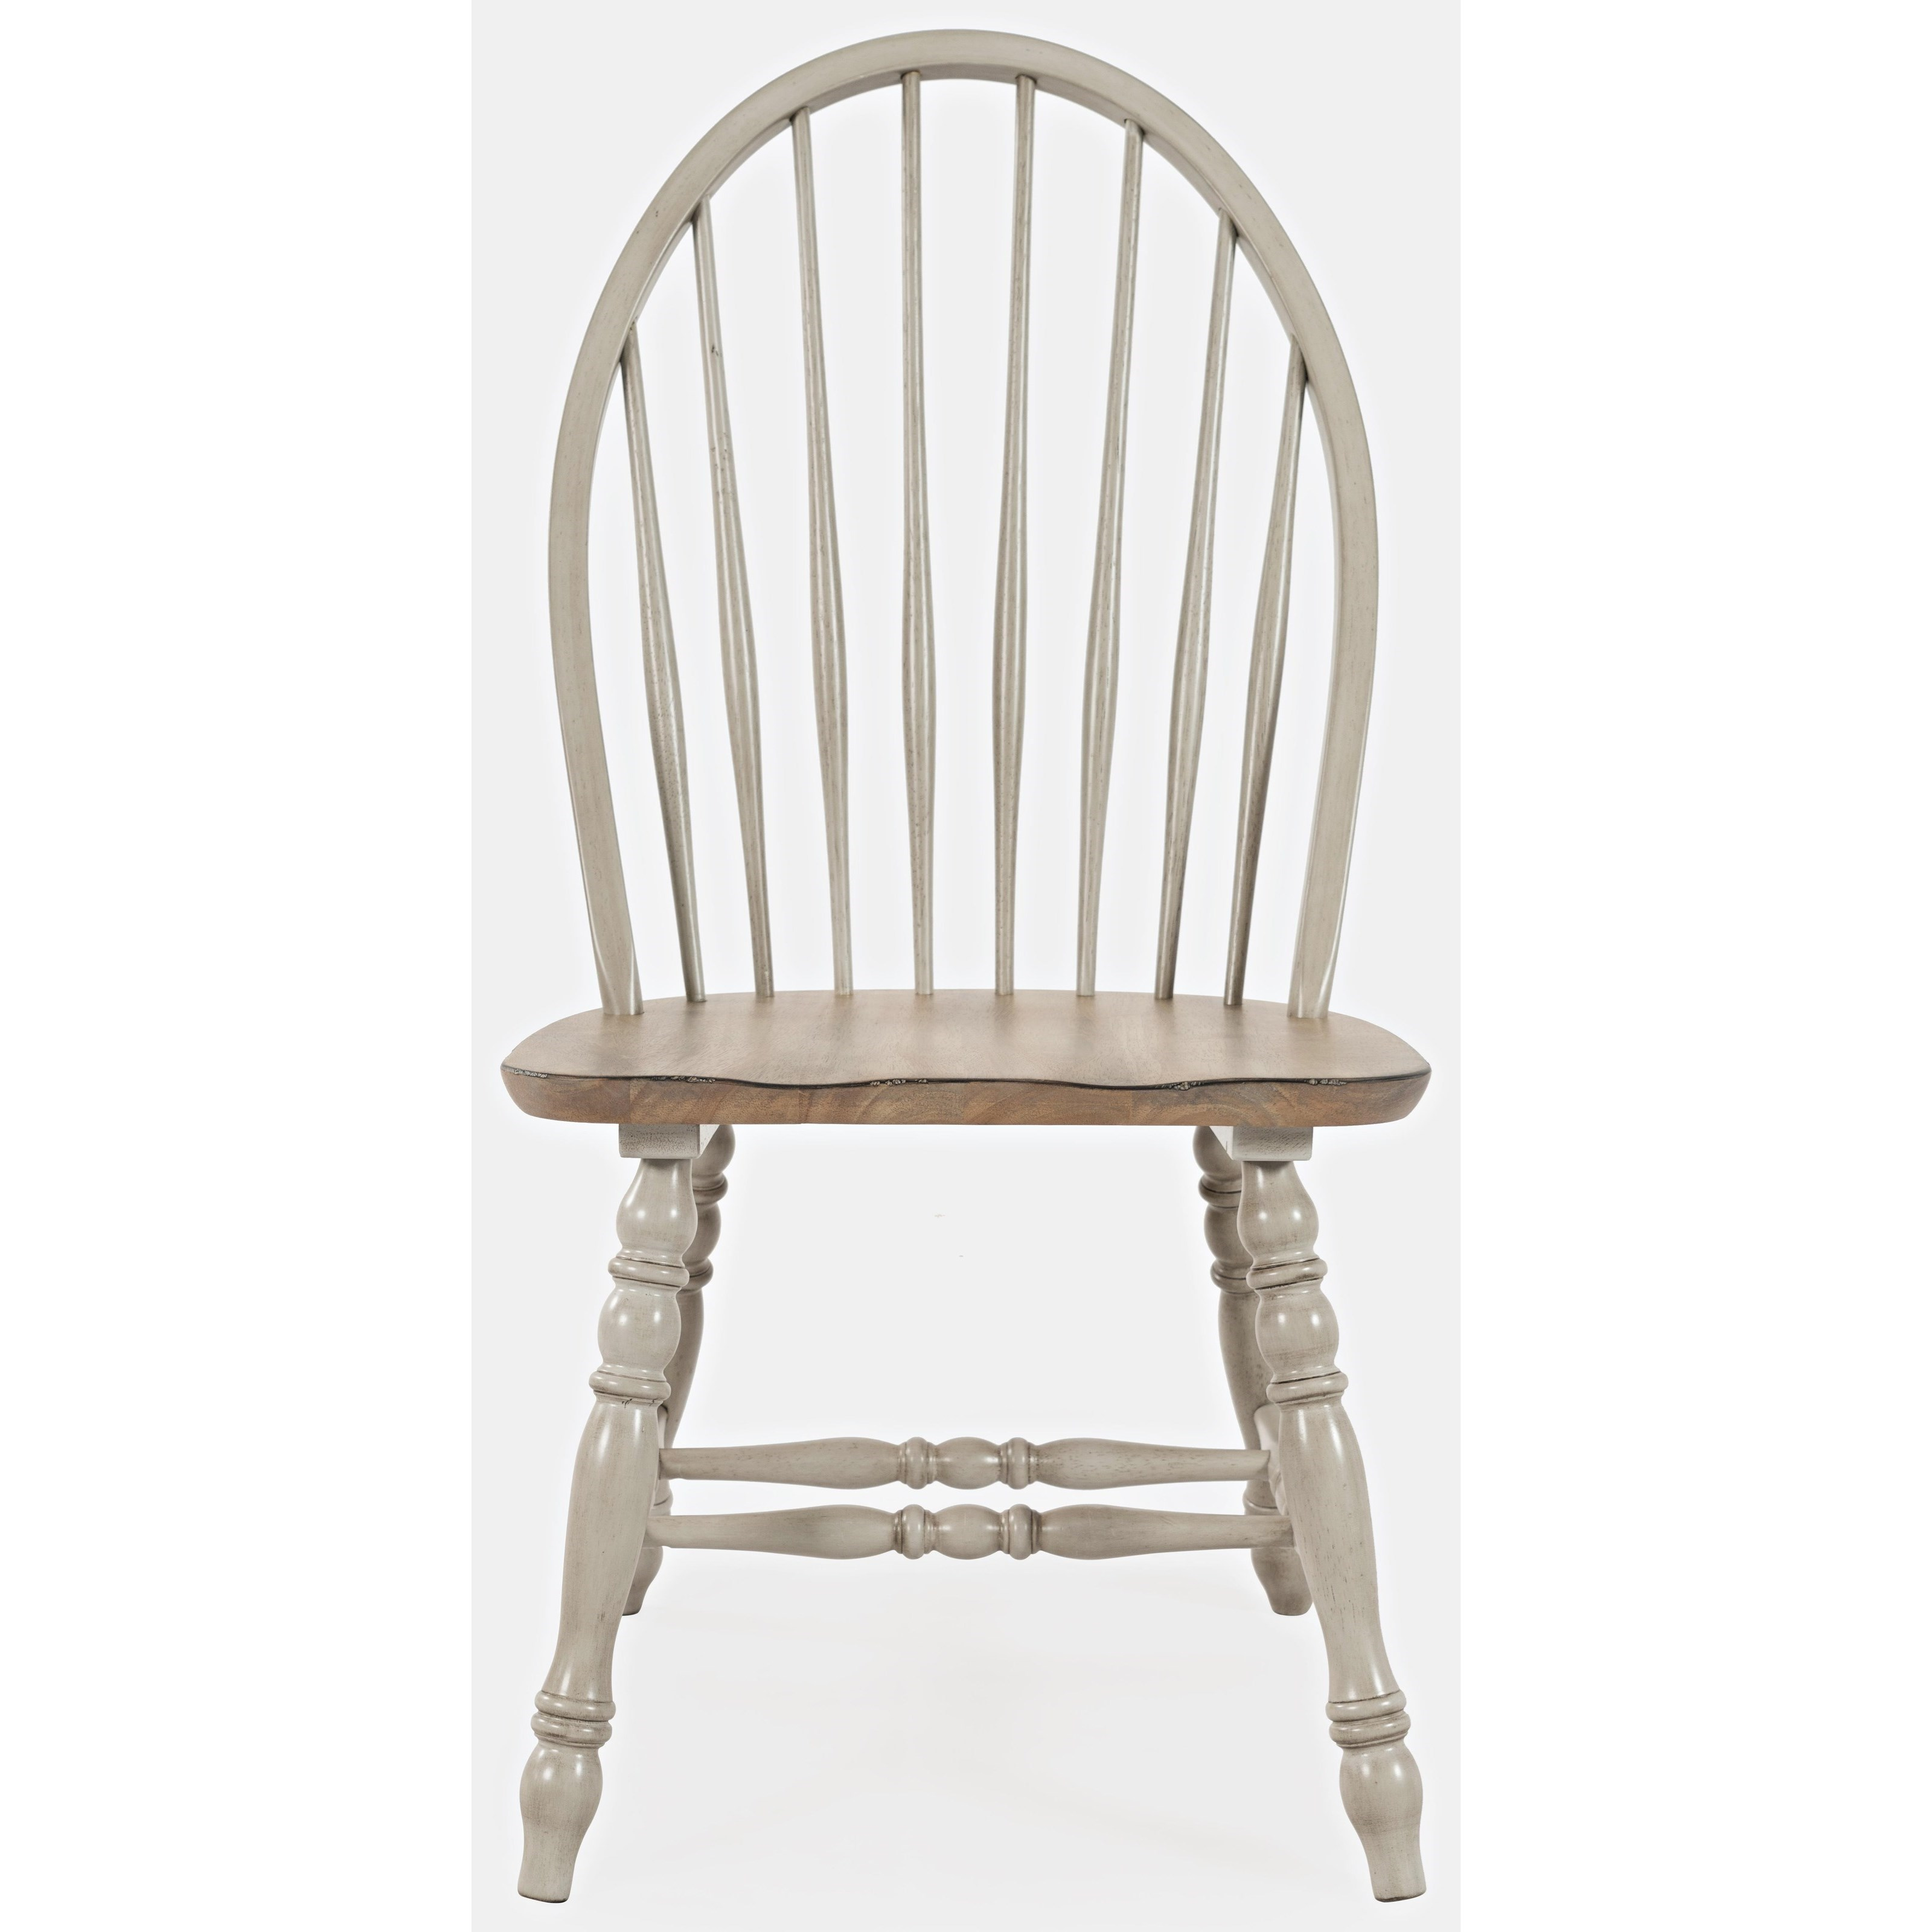 Bowback Windsor Chair